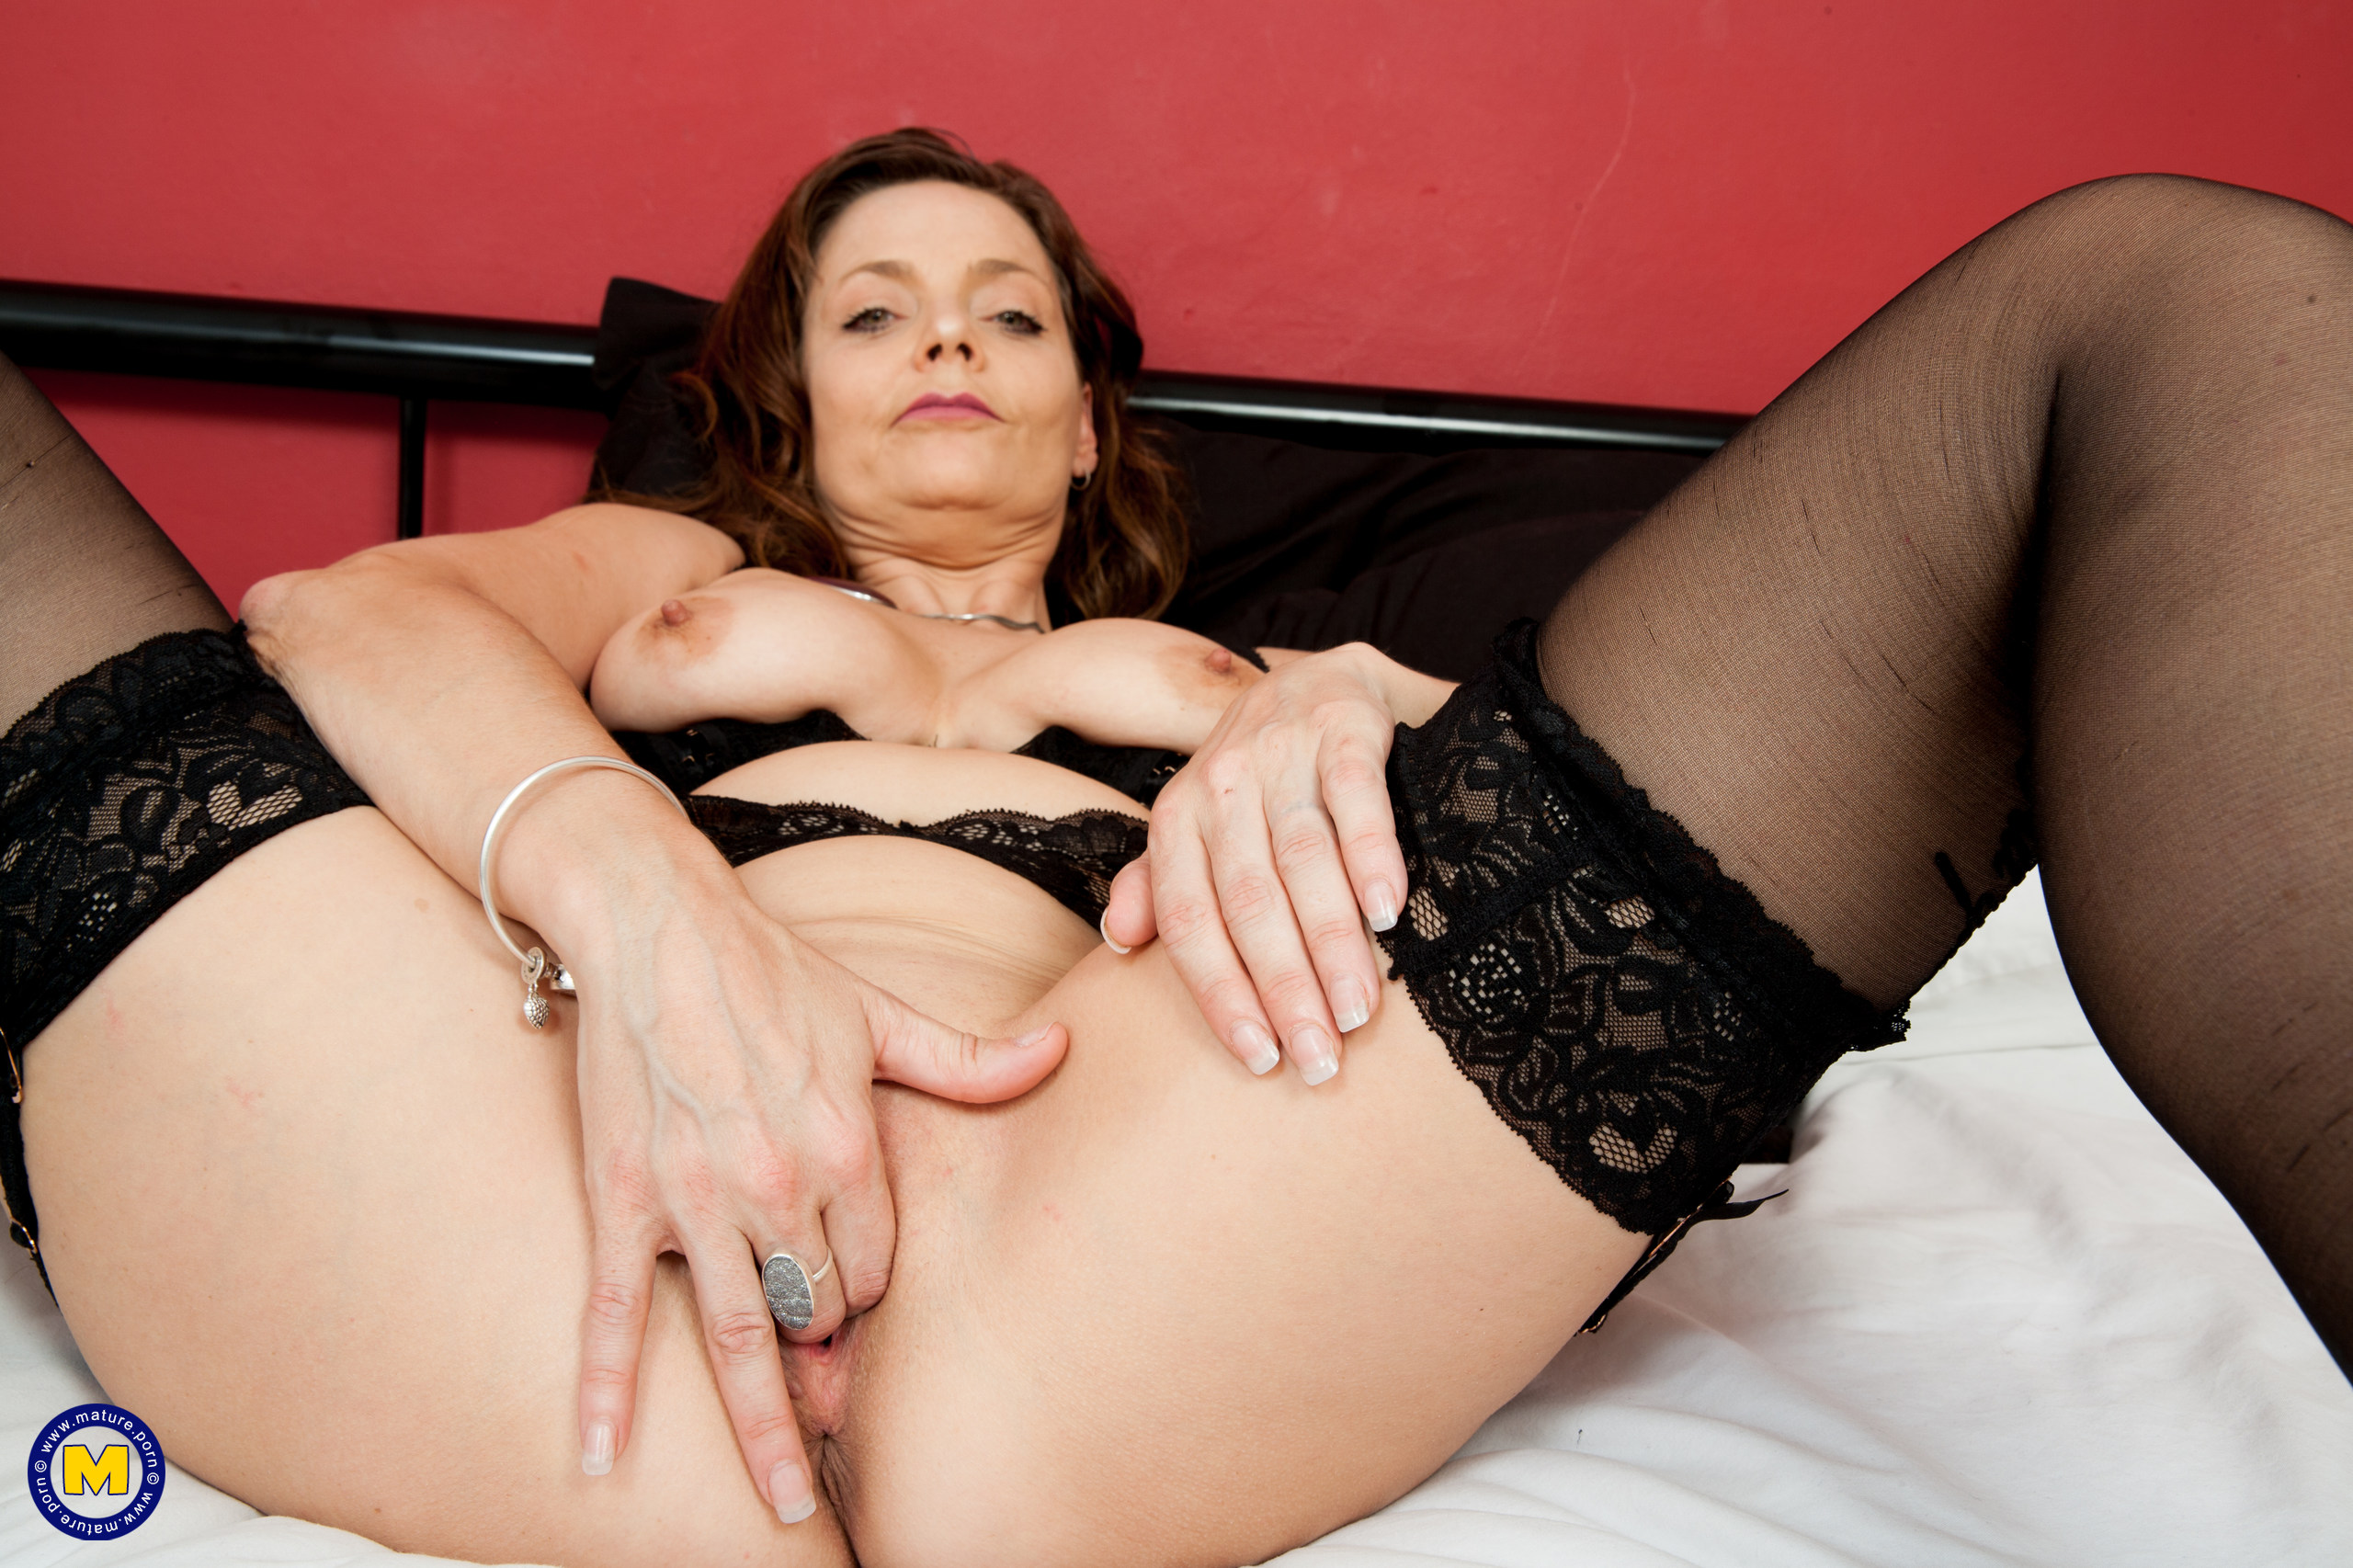 Naughty super hot Brit housewife toying with her poon